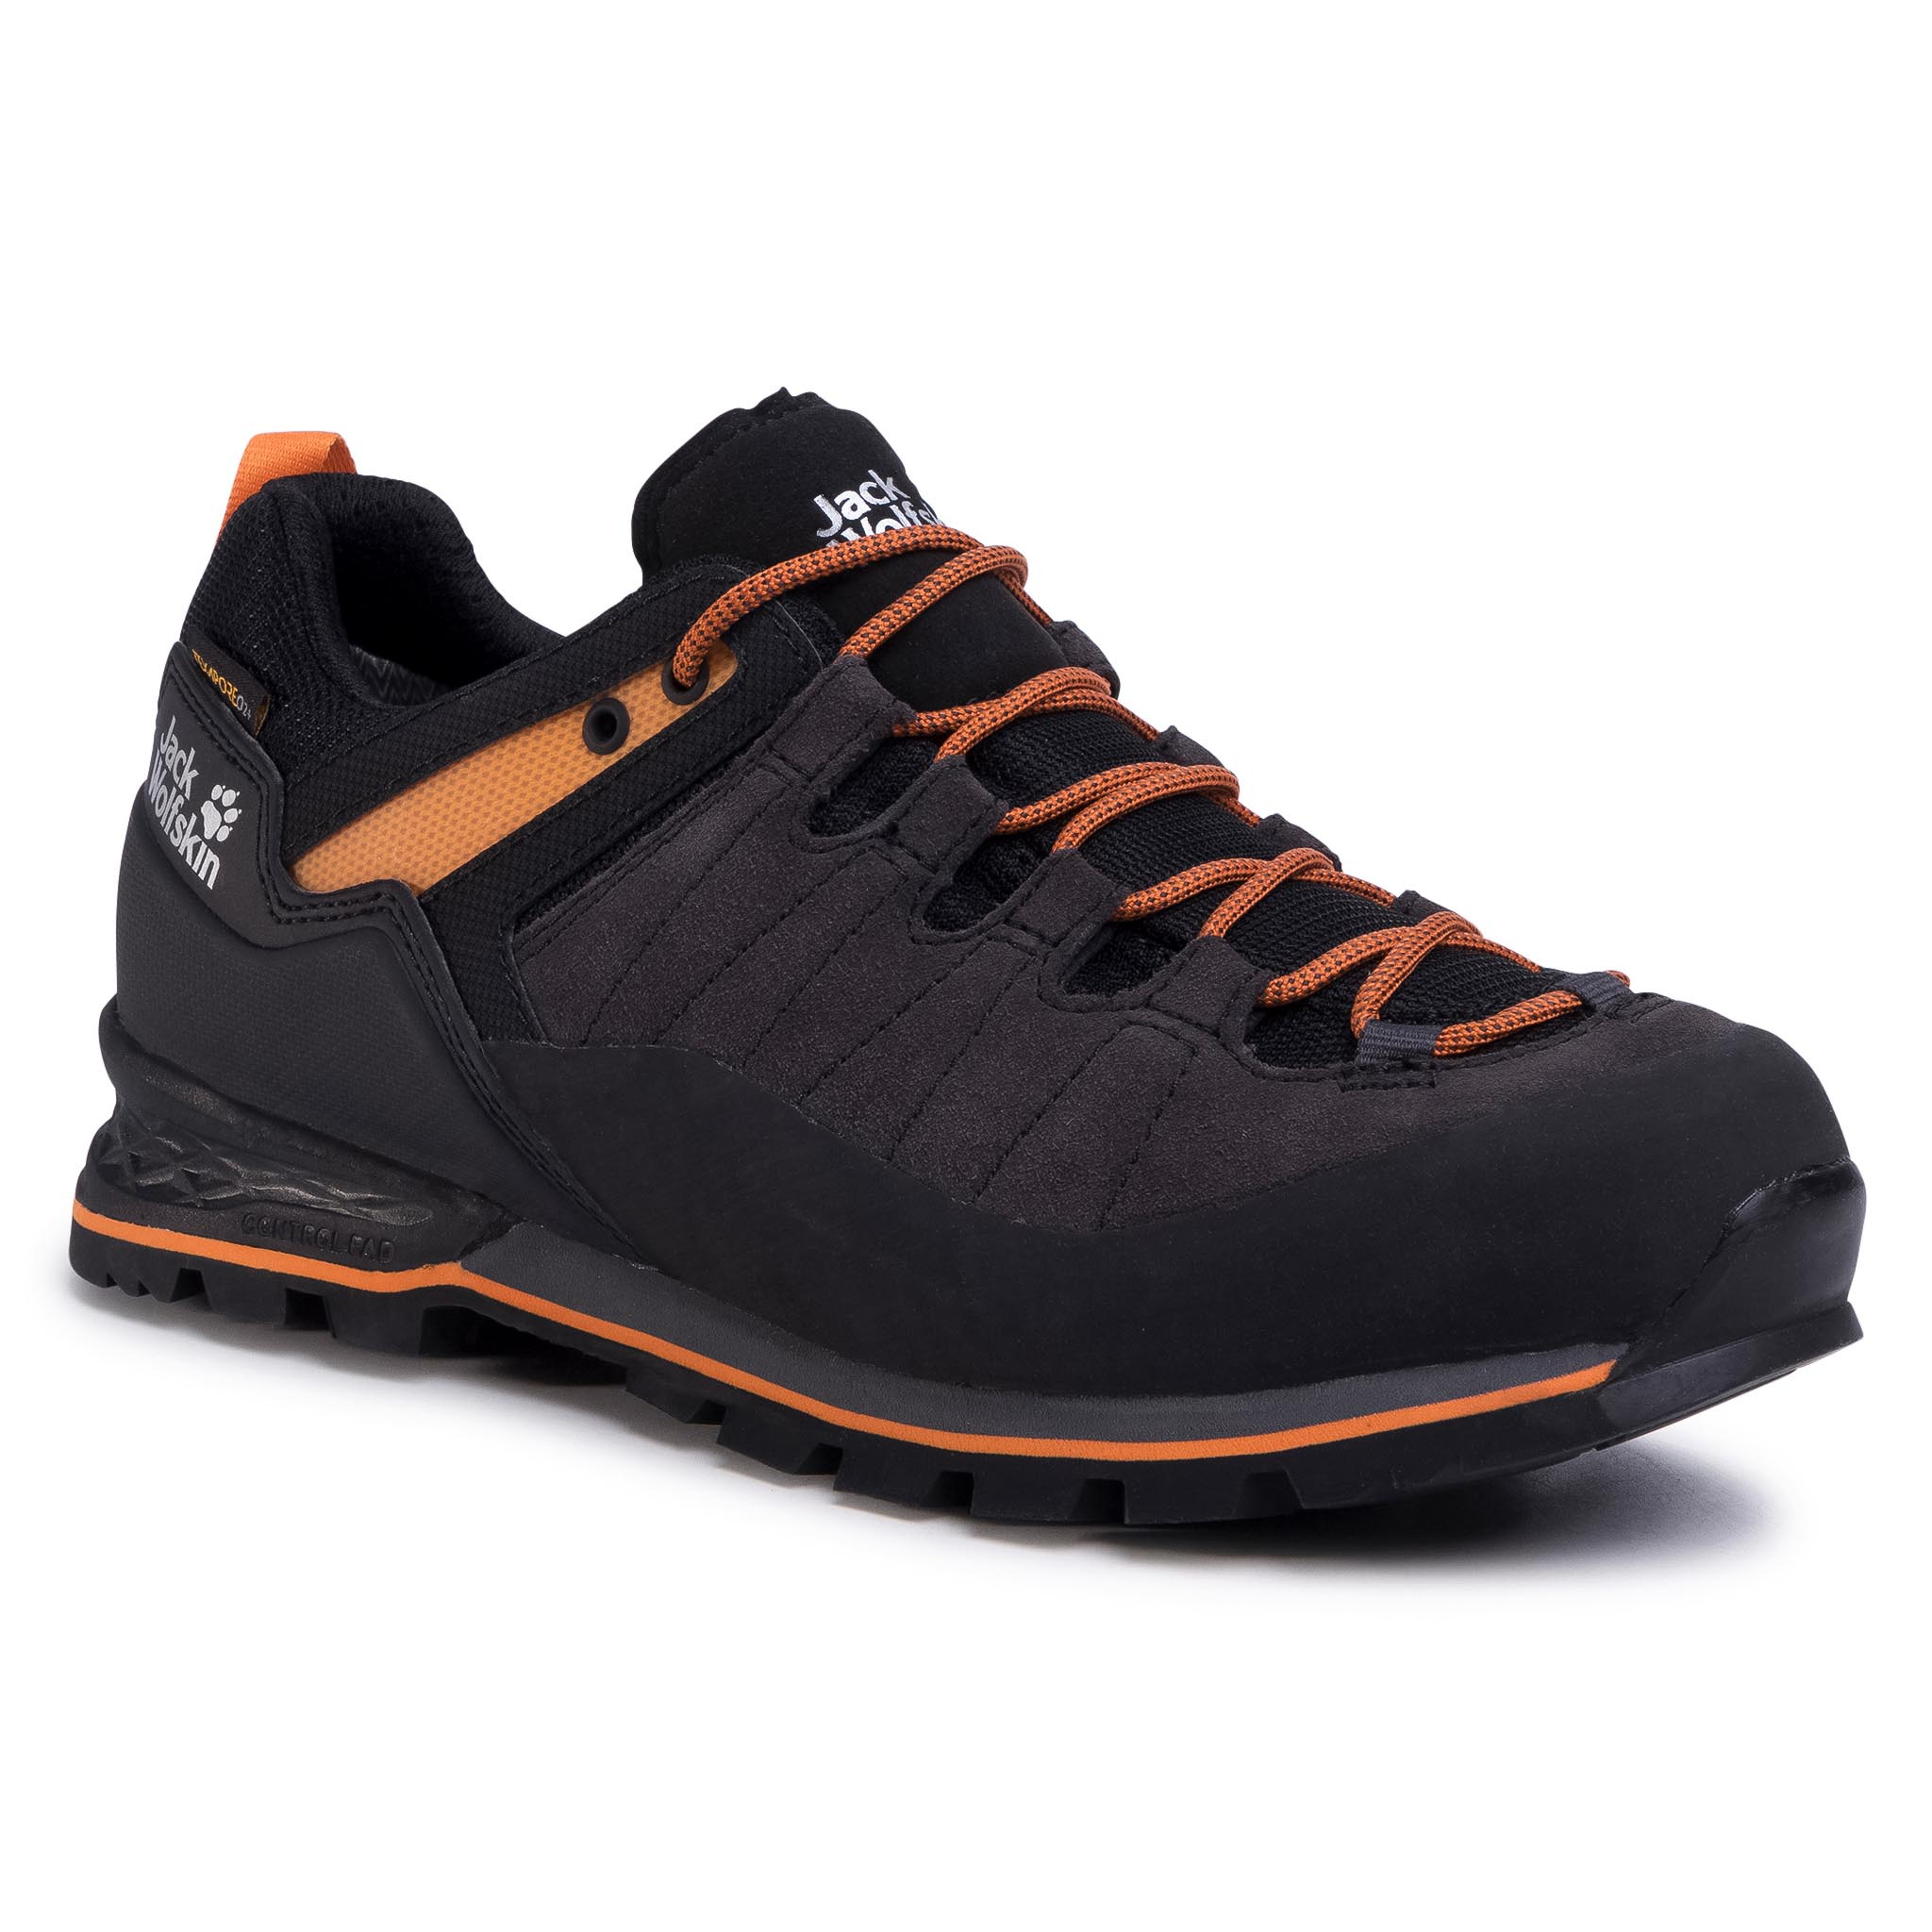 Trekkings Jack Wolfskin - Scrambler Xt Texapore Low M 4035311 Phantom/Orange imagine epantofi.ro 2021